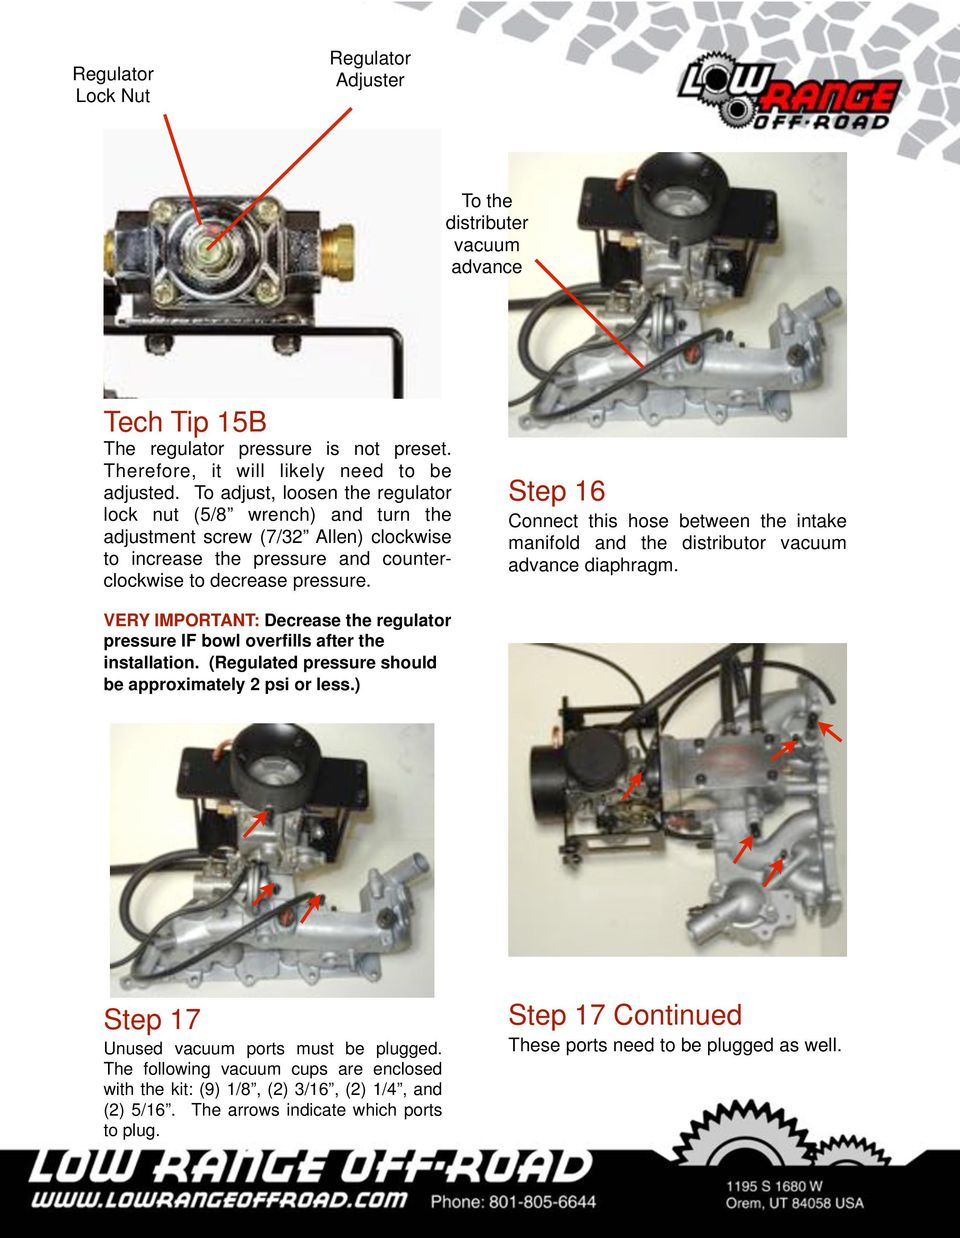 Installation Instructions Pdf 1988 F350 5 8l Intake Manifold Wiring Harness Step 16 Connect This Hose Between The And Distributor Vacuum Advance Diaphragm